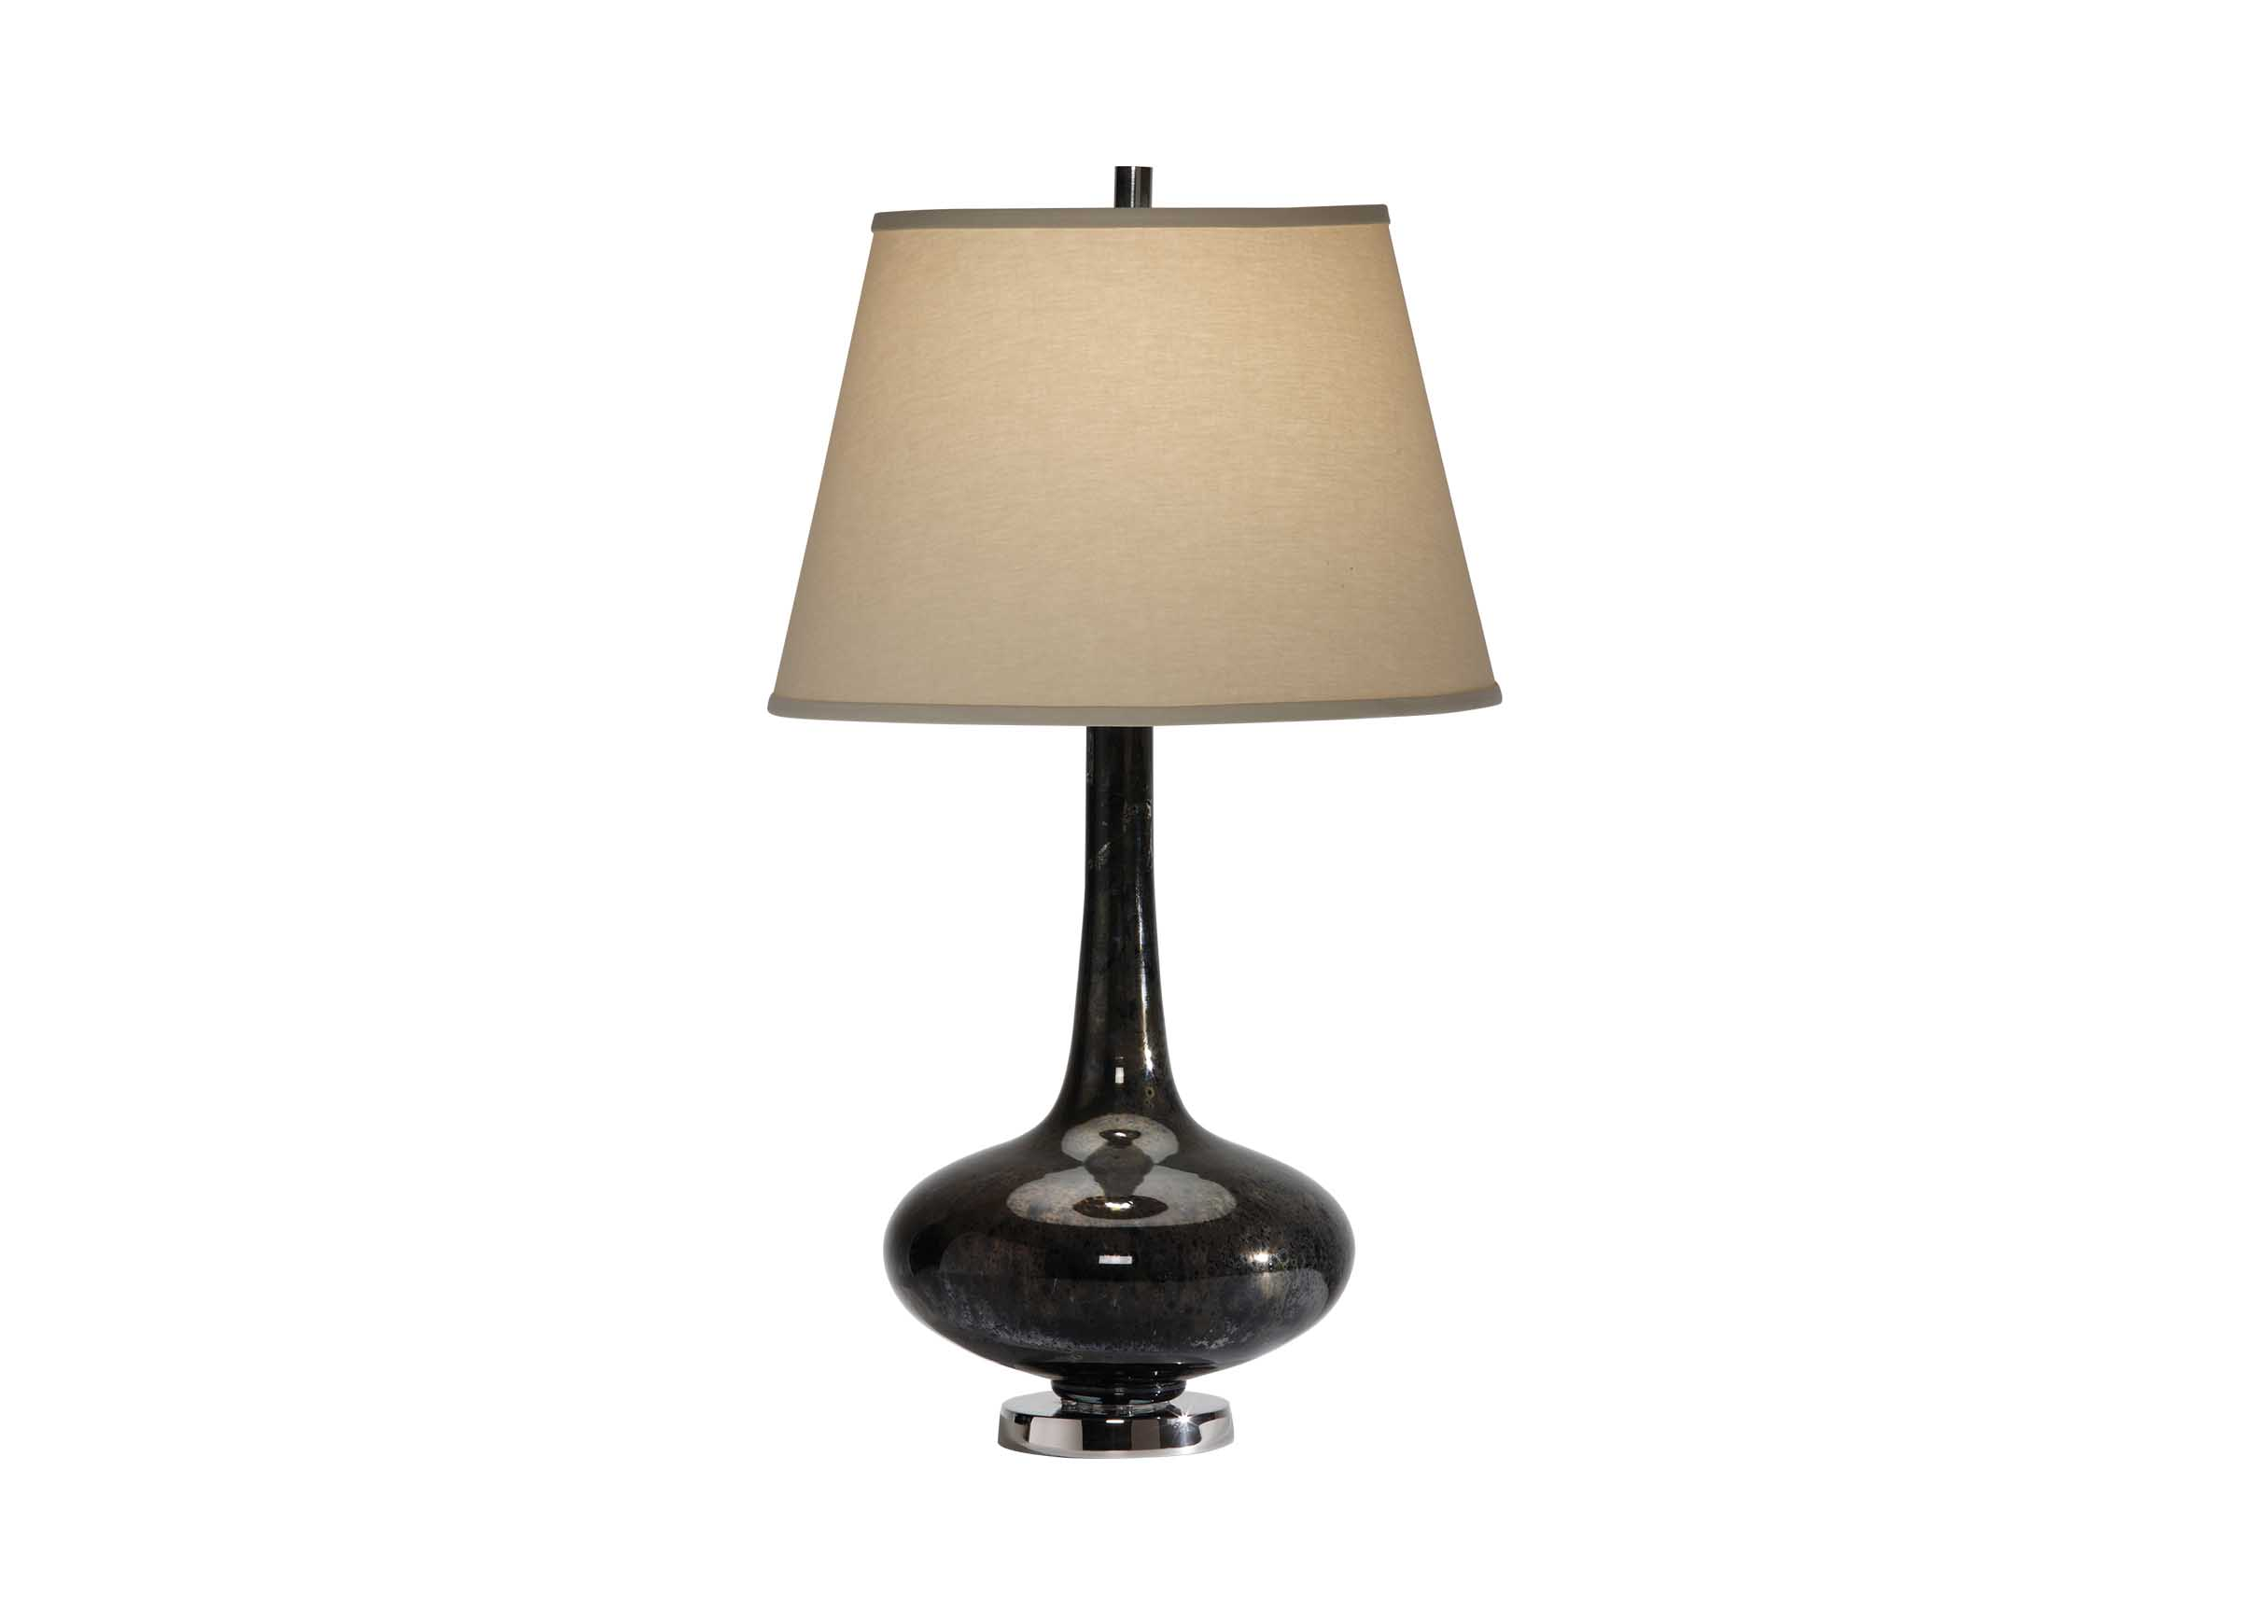 Images null & Mayfield Table Lamp | TABLE LAMPS | Ethan Allen